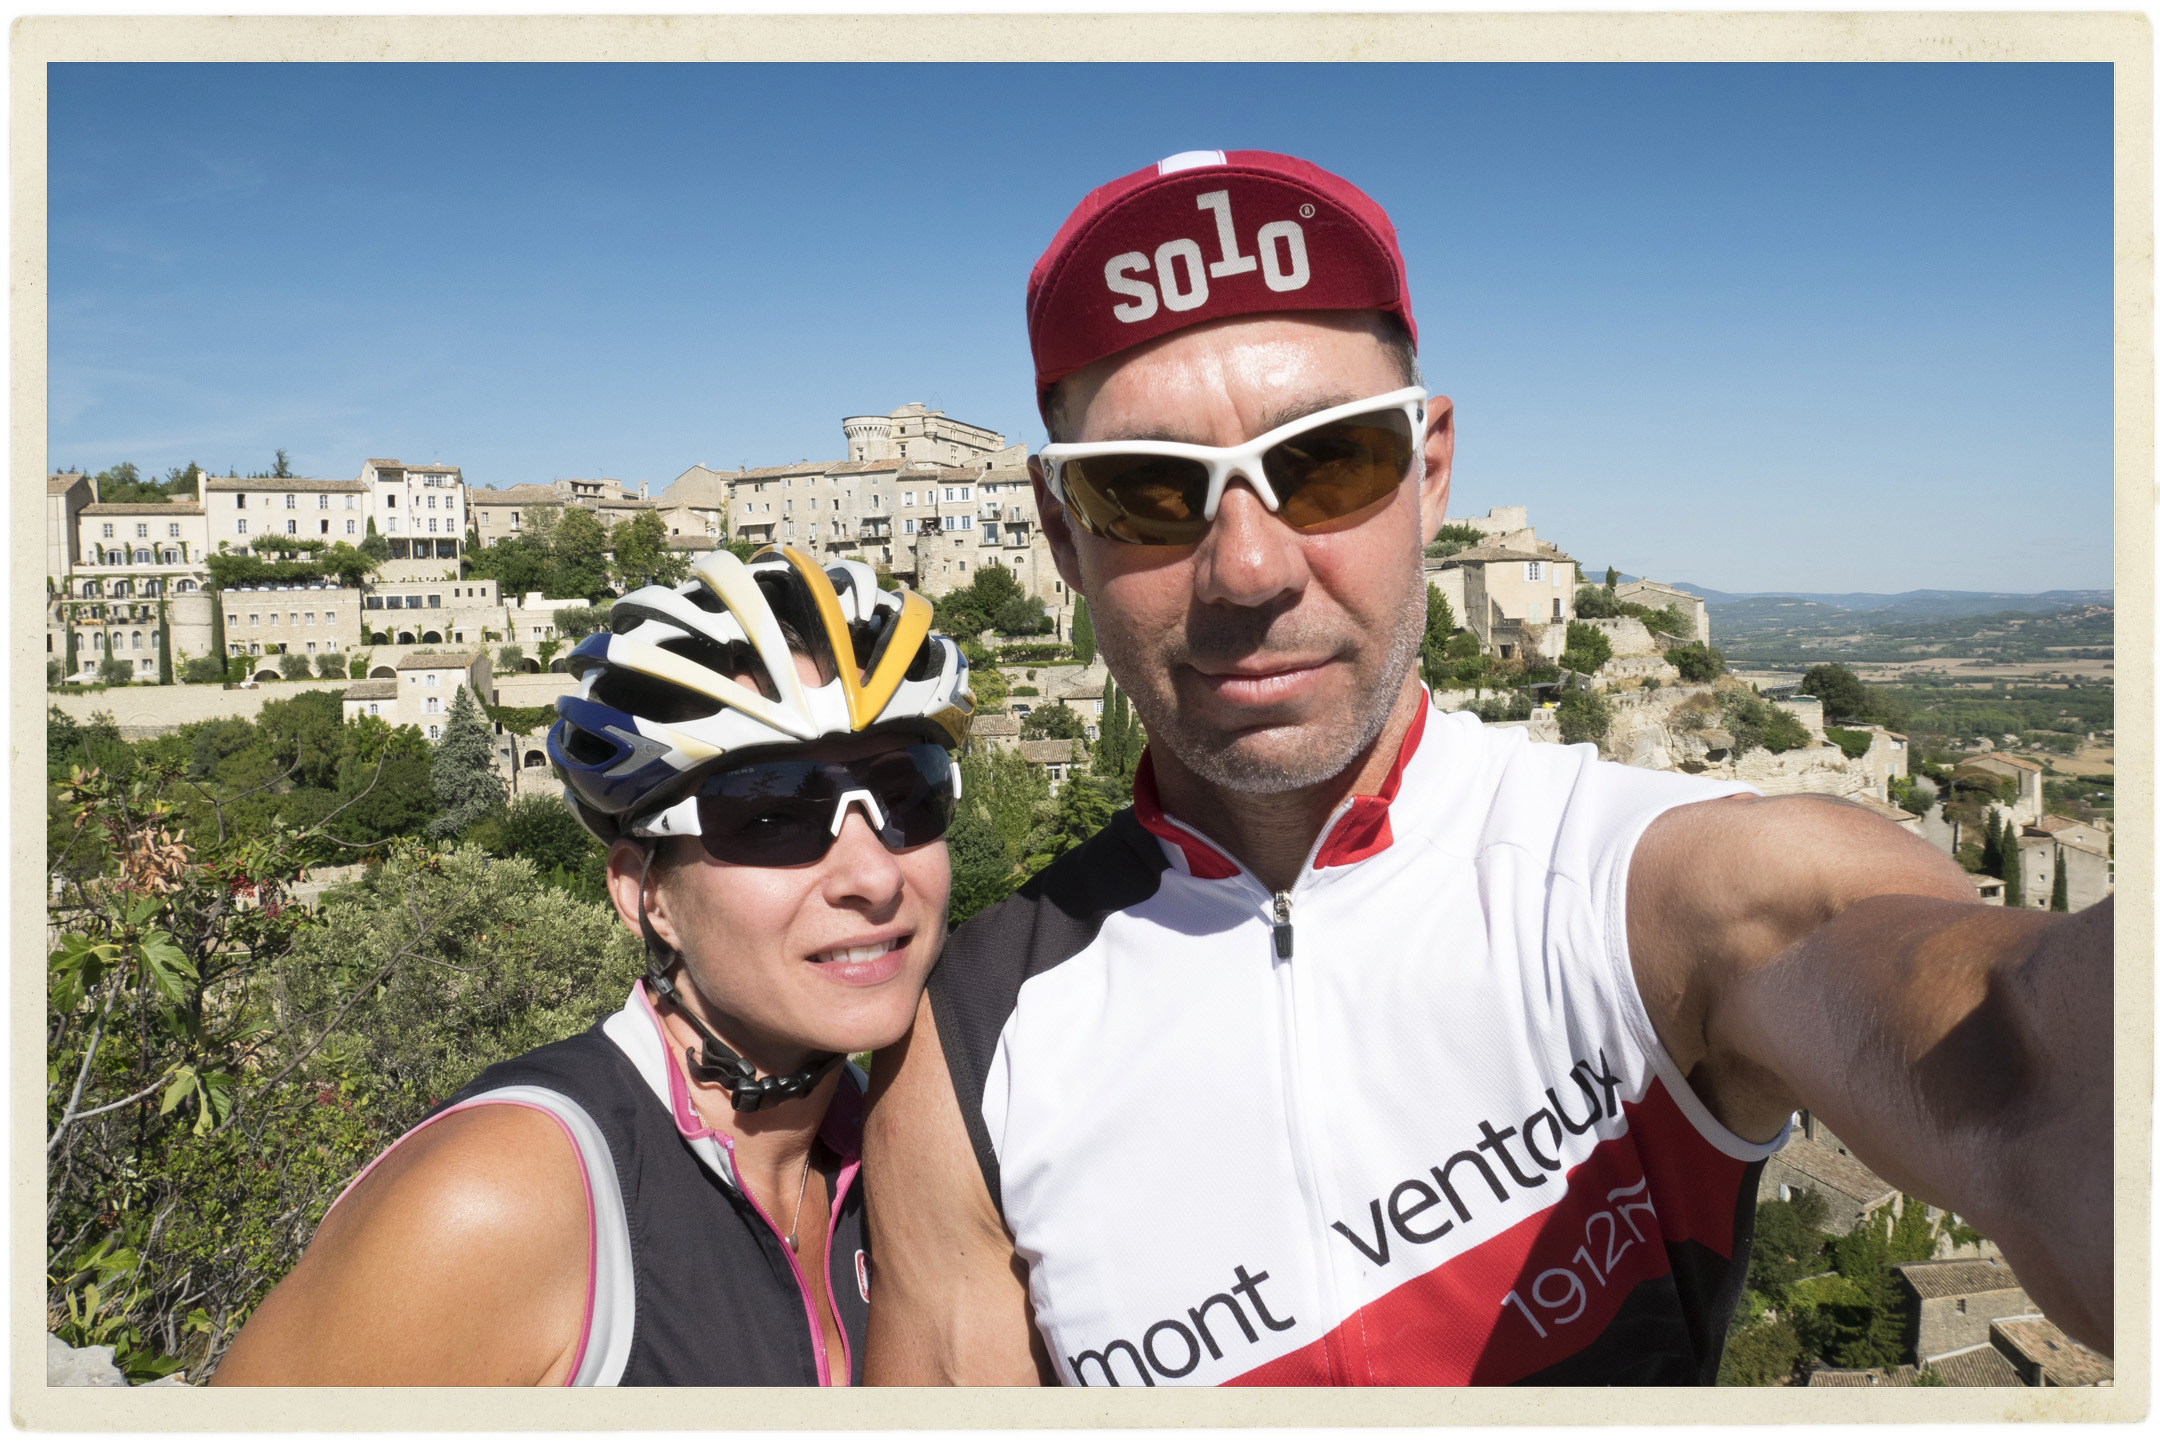 Beautiful ride in the Luberon on one of the last +30 days.